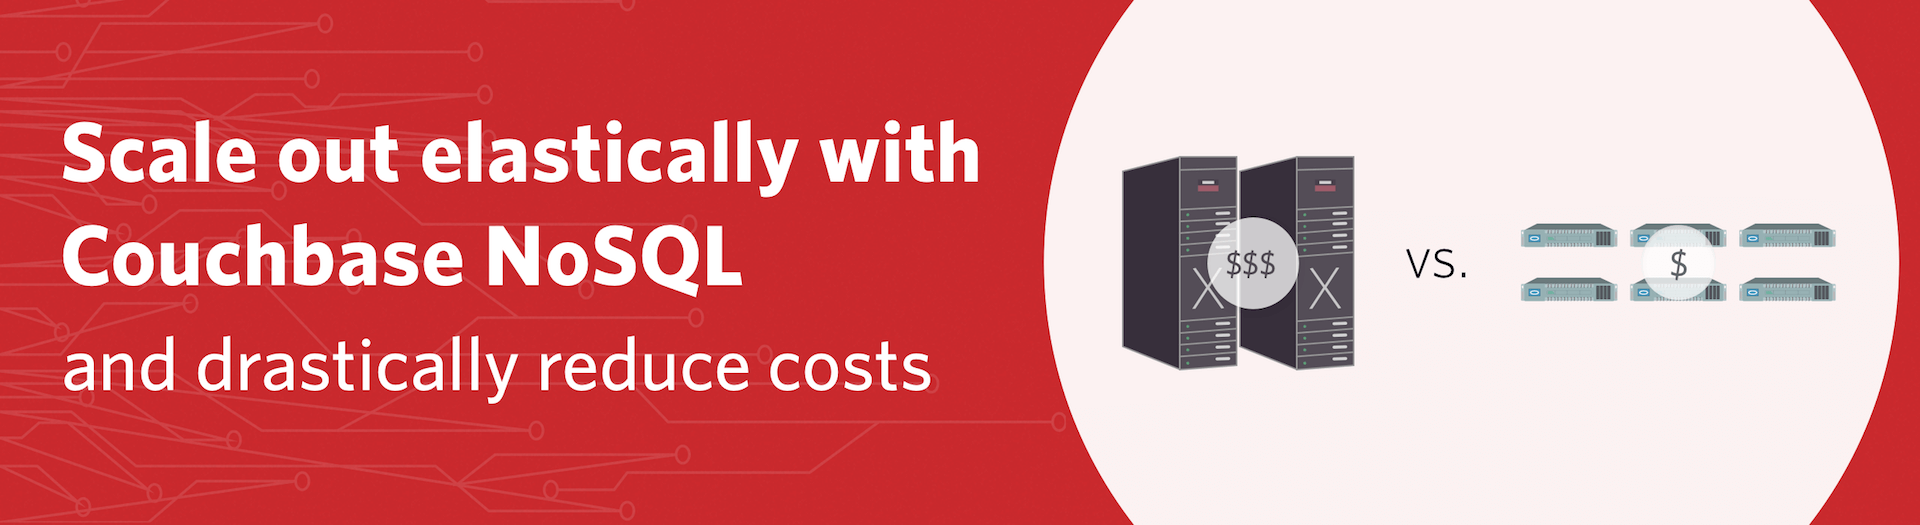 Scale out elastically with Couchbase NoSQL and drastically reduce cost